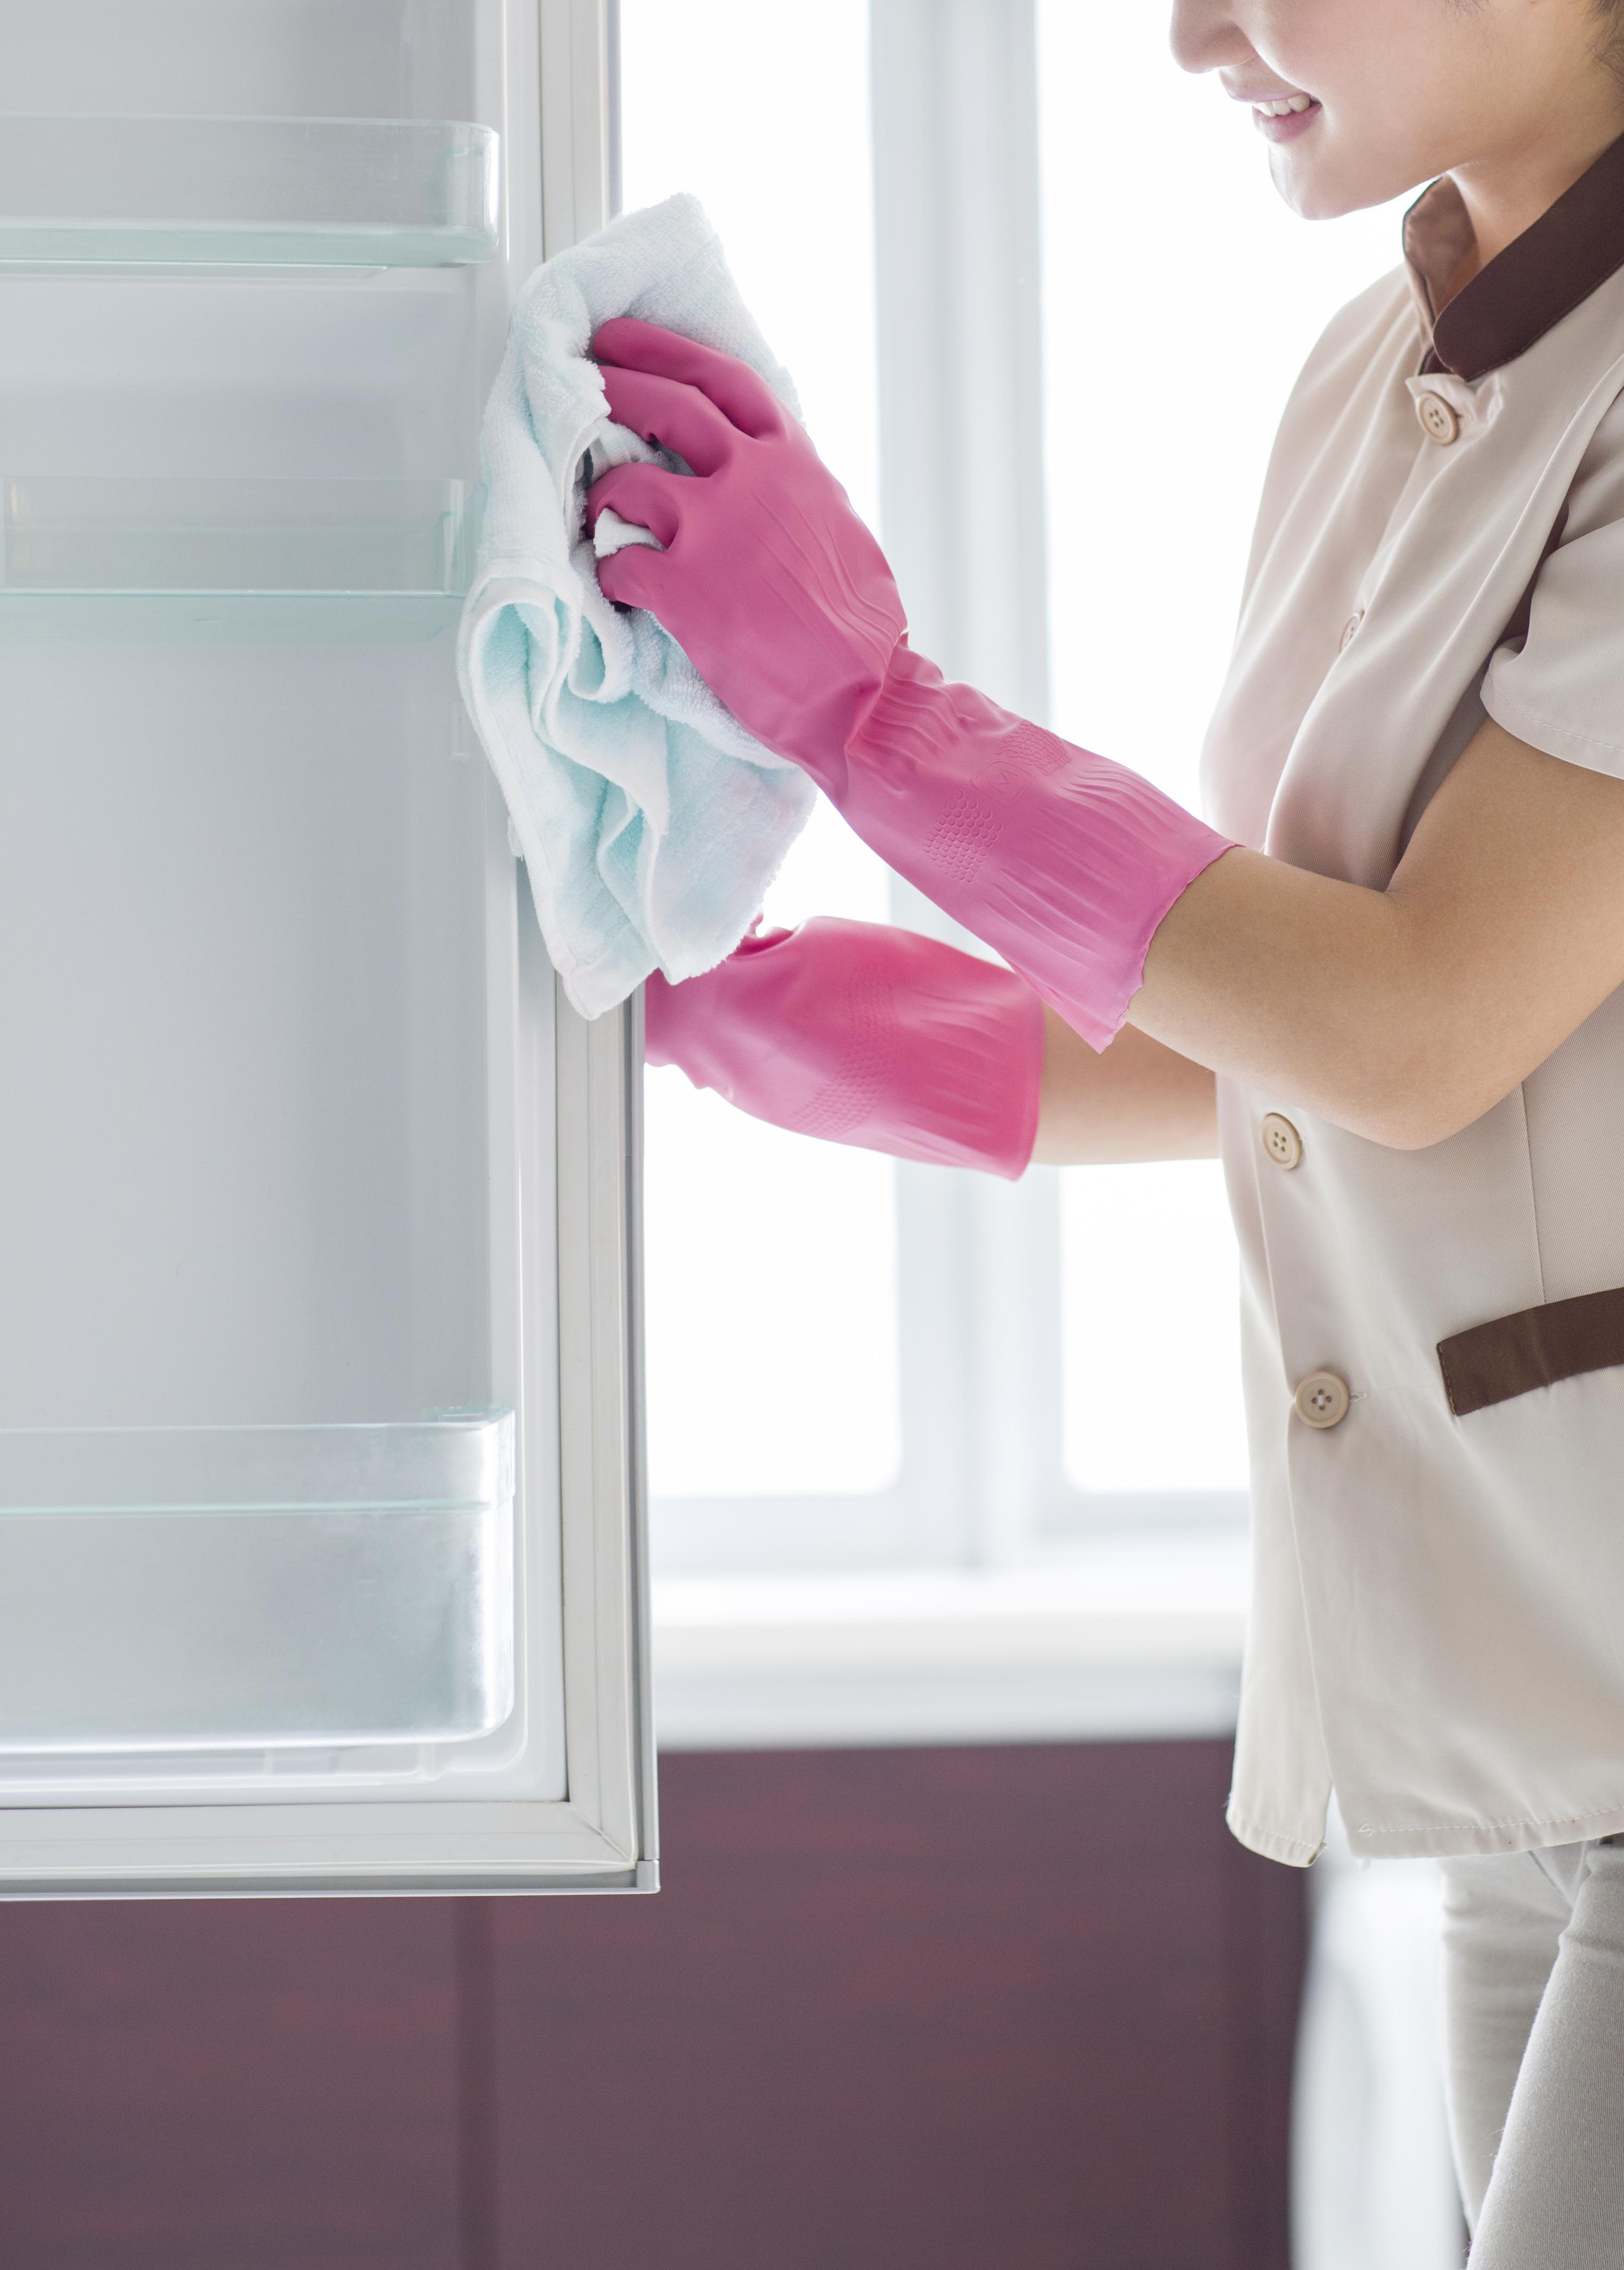 Spring Cleaning Tips spring cleaning 30 day guide - 30 spring cleaning tip